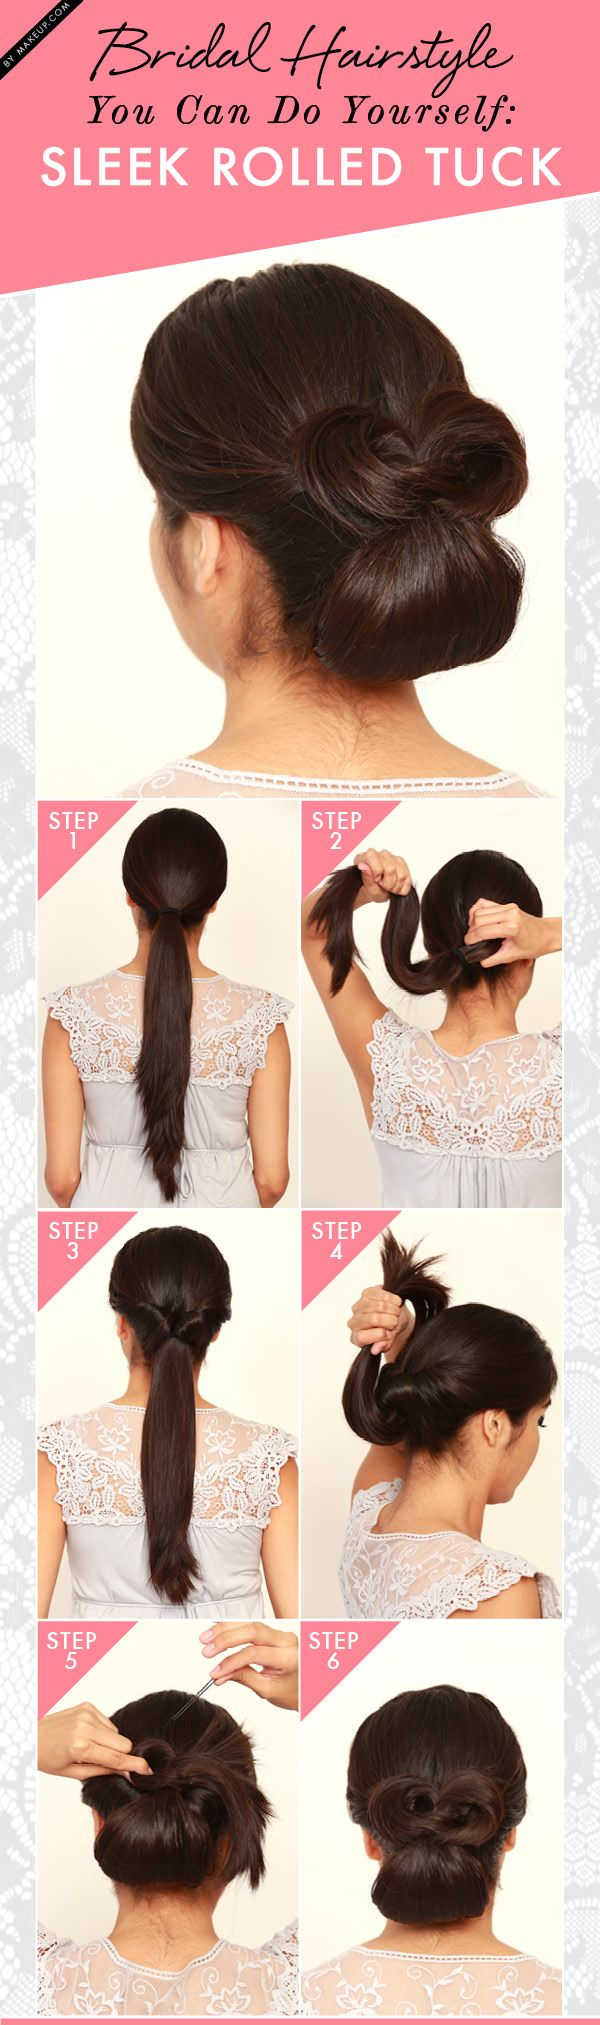 "A sleek bridal updo like this rolled tuck hairstyle is a DIY bride's best friend. Ladies with long locks, this sleek rolled tuck is the answer to your wedding day prayers. Calm your inner Bridezilla and give it a whirl — you'll be much better equipped to channel your ""blushing bride"" side afterwards, trust us."